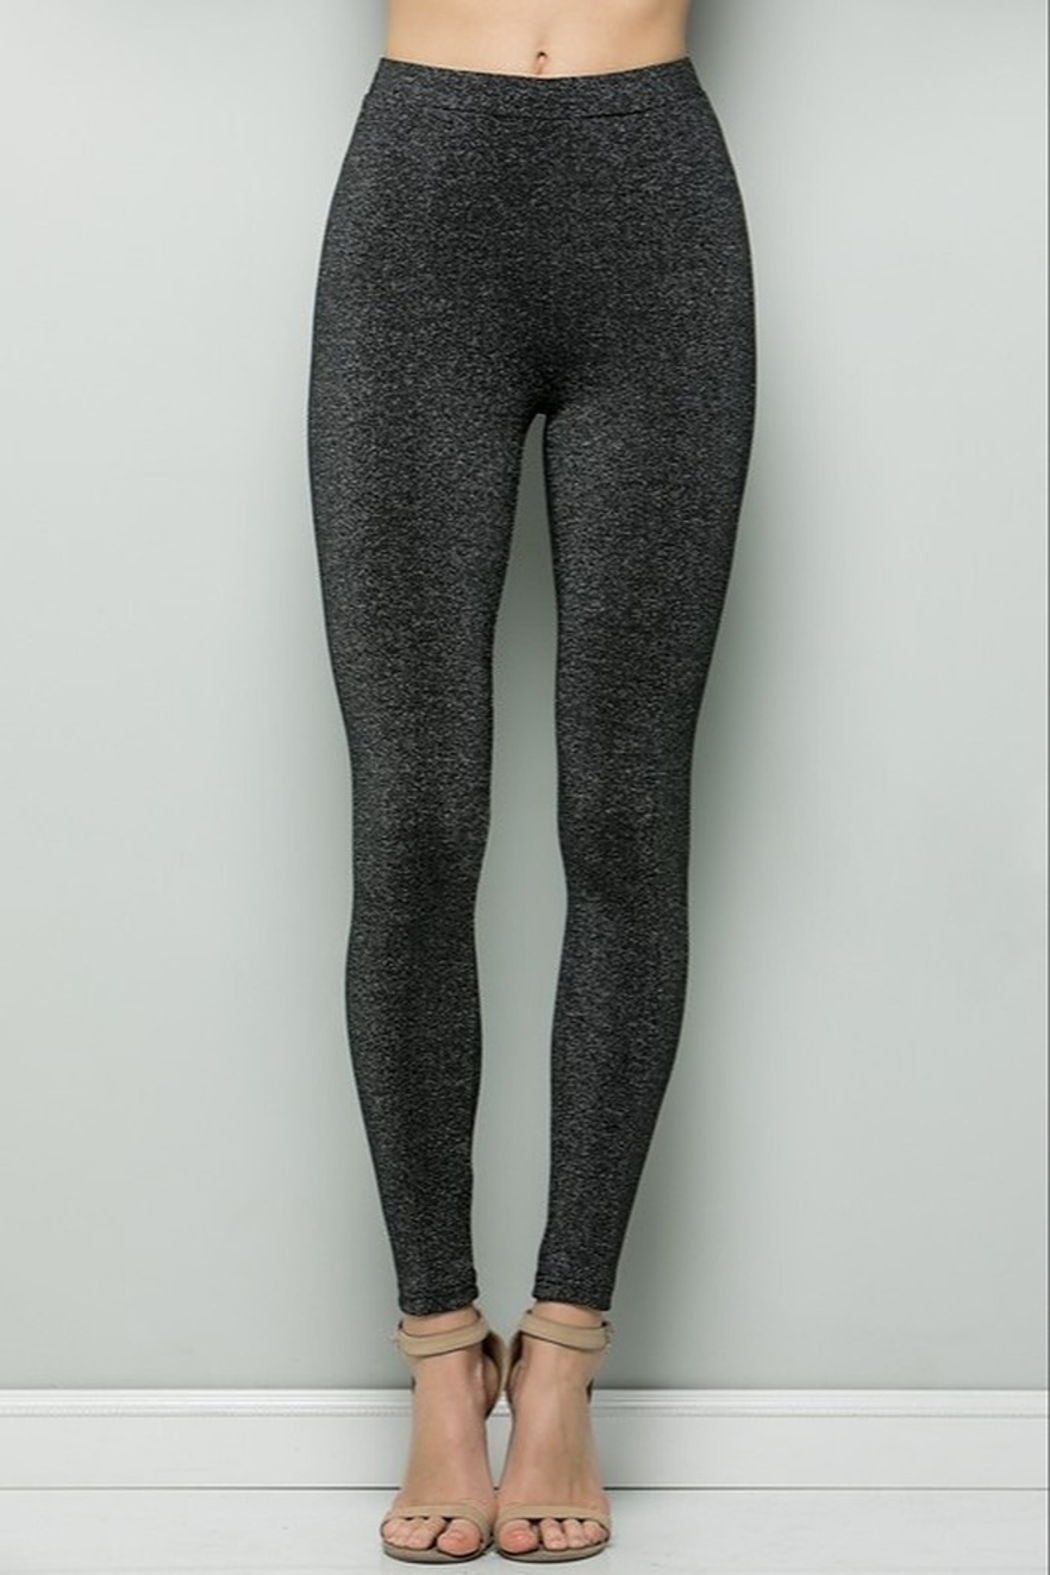 See and Be Seen Black Sparkle Leggings - Main Image